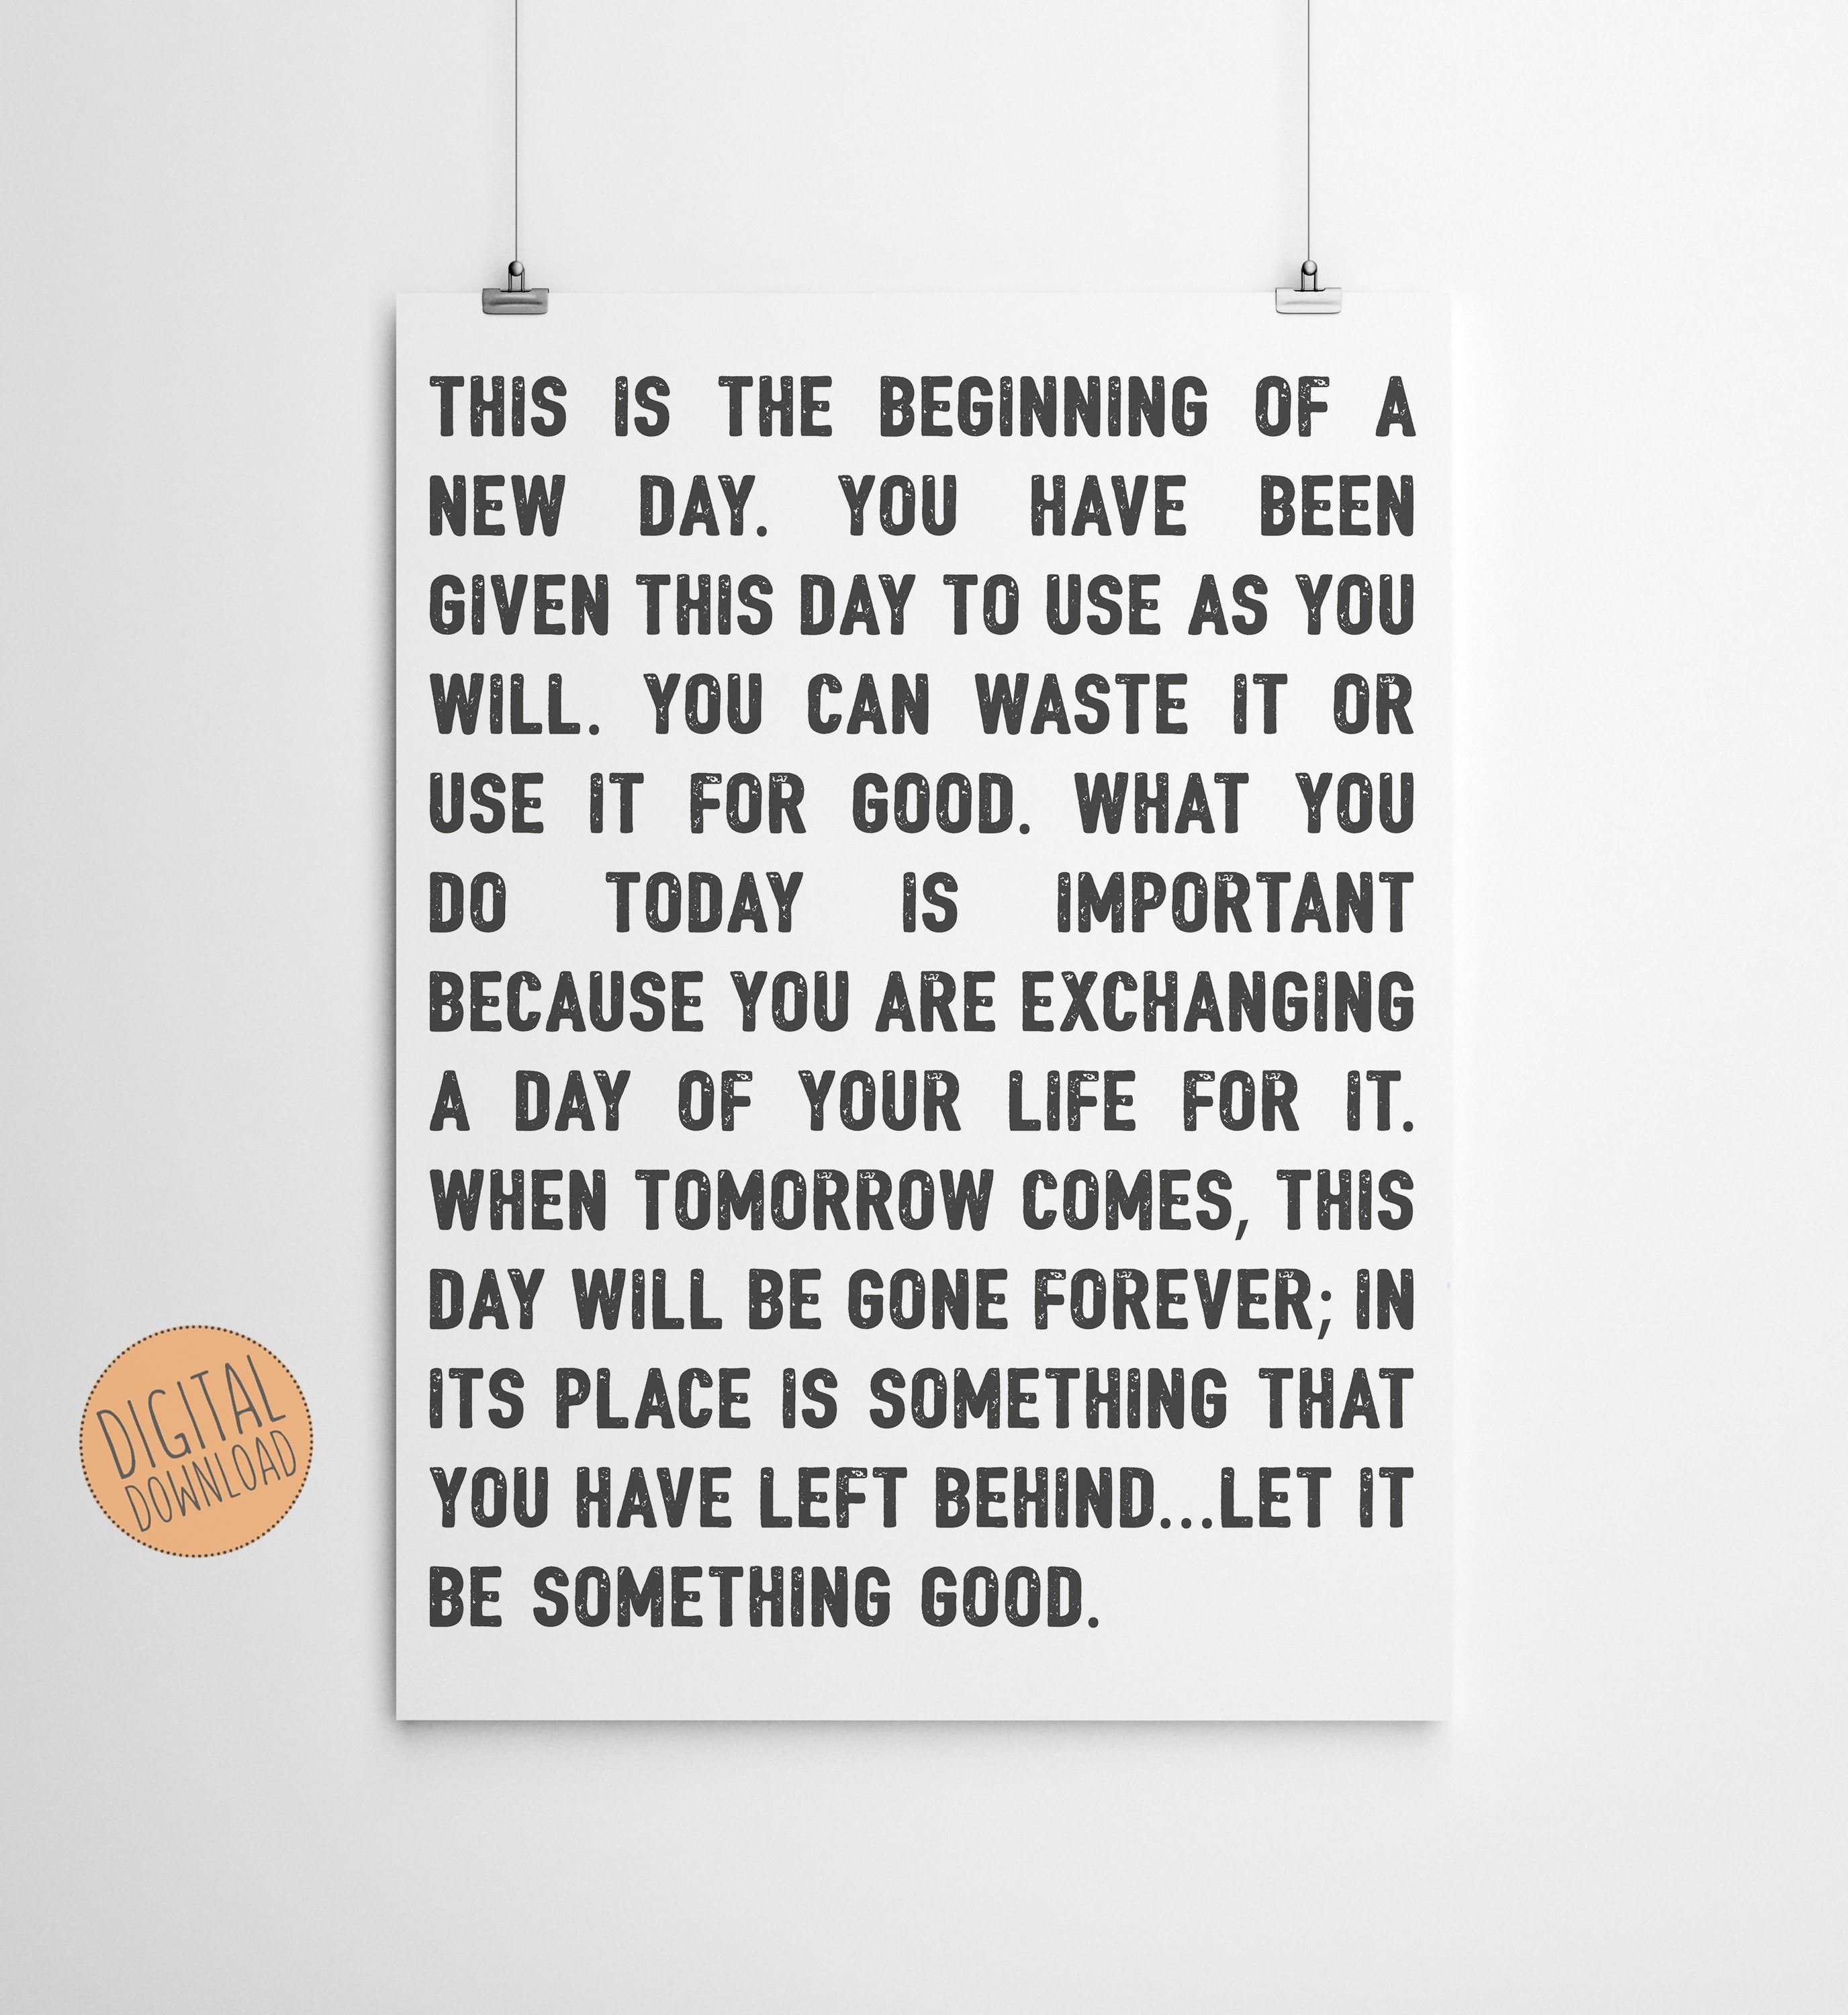 This Is The Beginning Of A New Day Beginnings Good Do Good Etsy In 2021 Wall Art Quotes Fun To Be One New Day